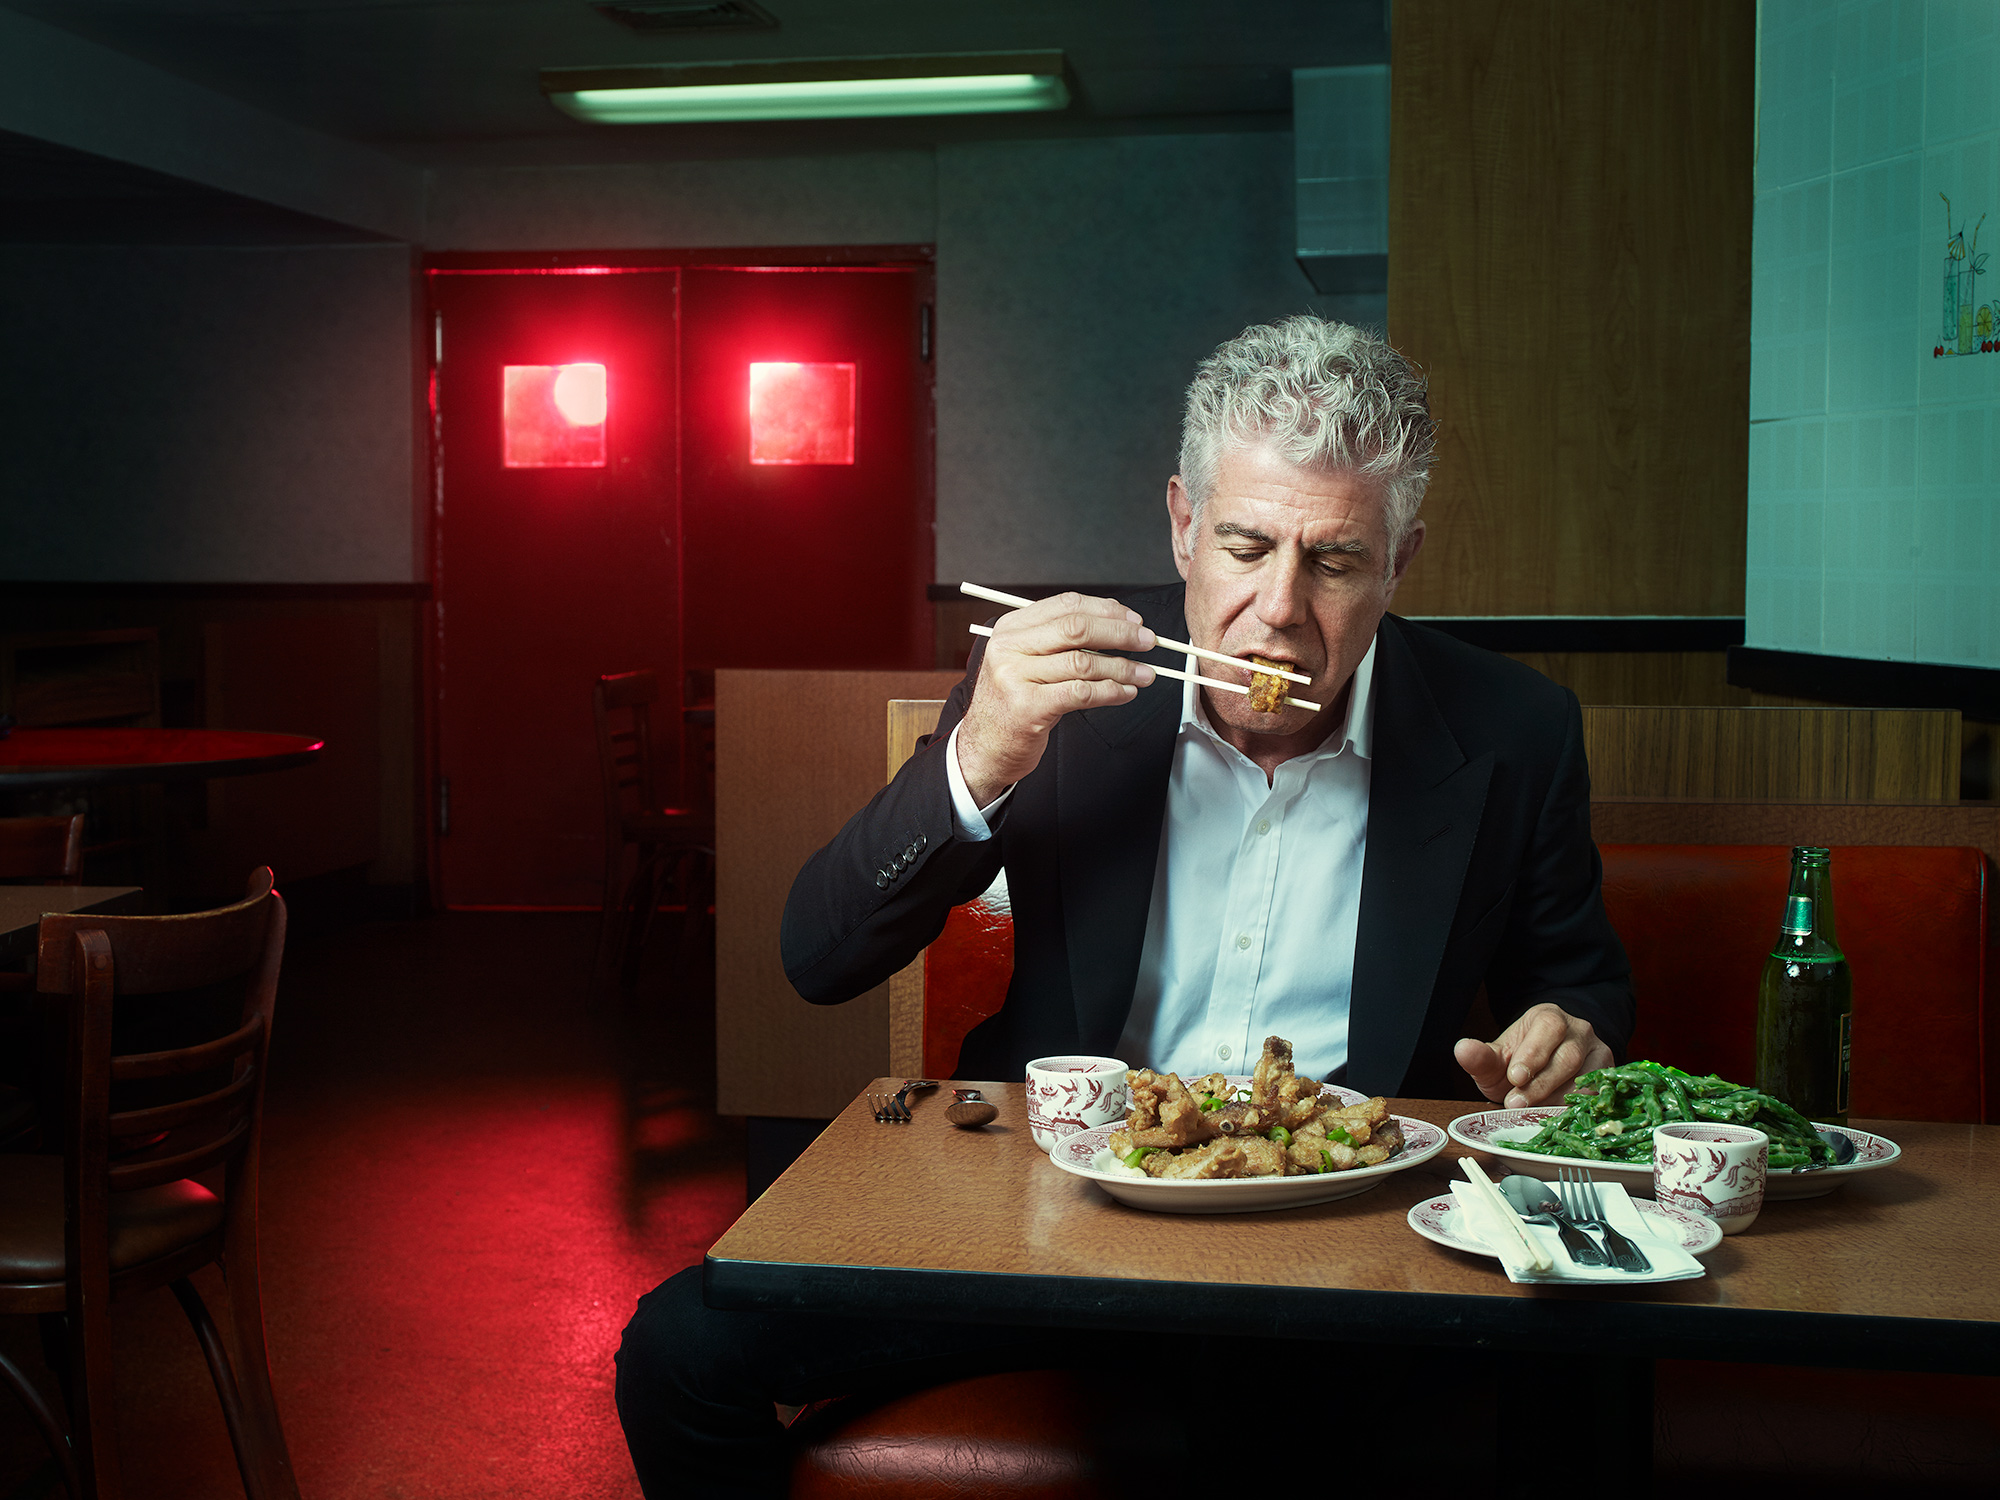 Anthony-Bourdain-by-Robert-Ascroft-03